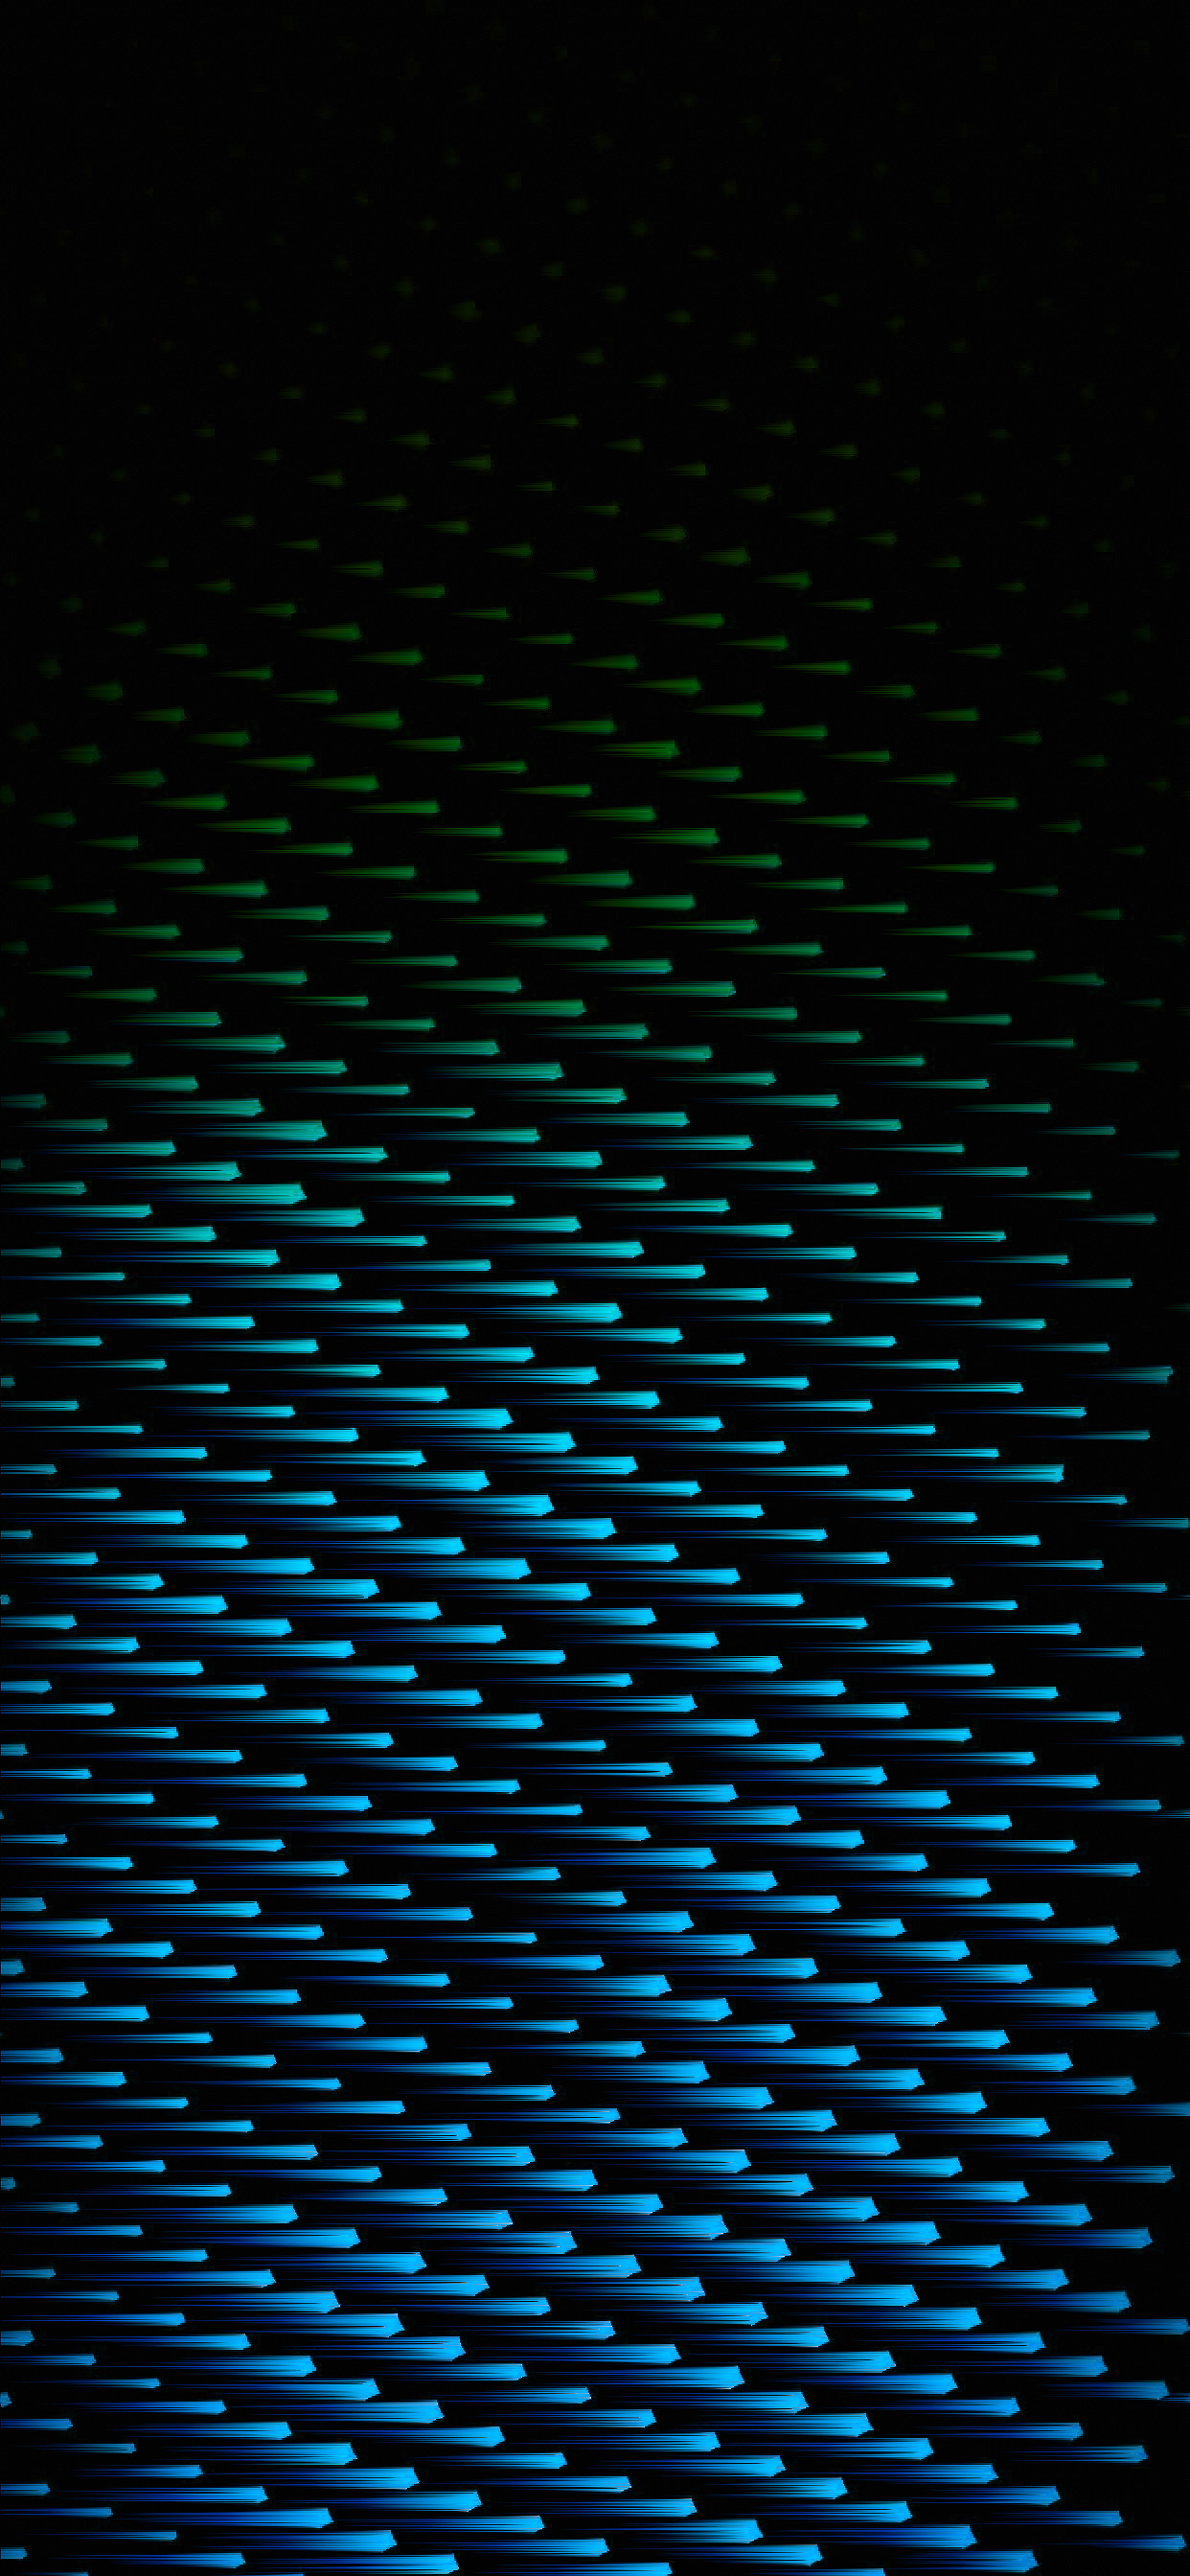 iPhone wallpaper texture colors blue Fonds d'écran iPhone du 27/03/2019